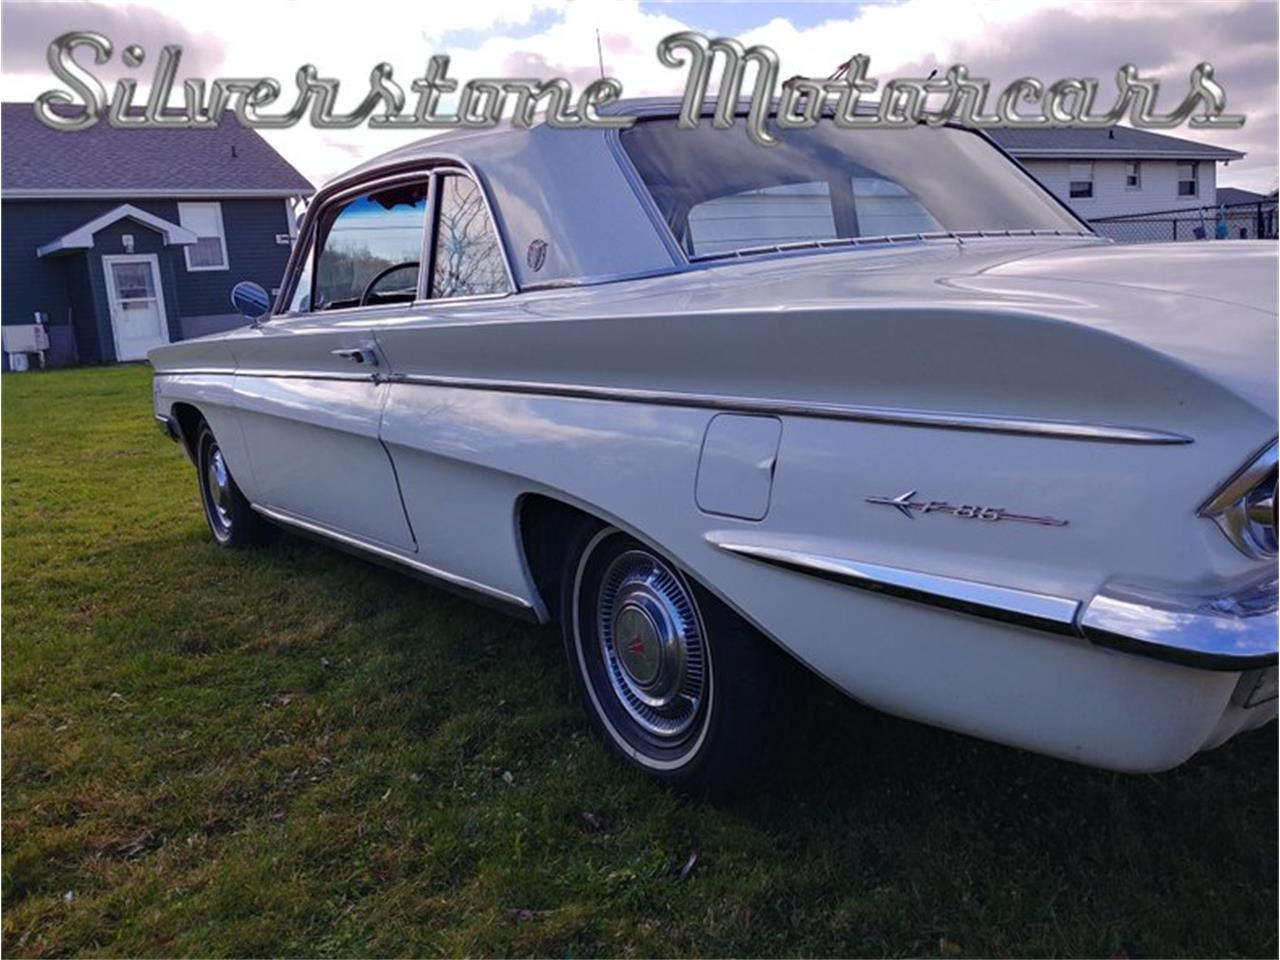 Large Picture of 1962 Oldsmobile F85 located in North Andover Massachusetts - $17,000.00 Offered by Silverstone Motorcars - PTK0